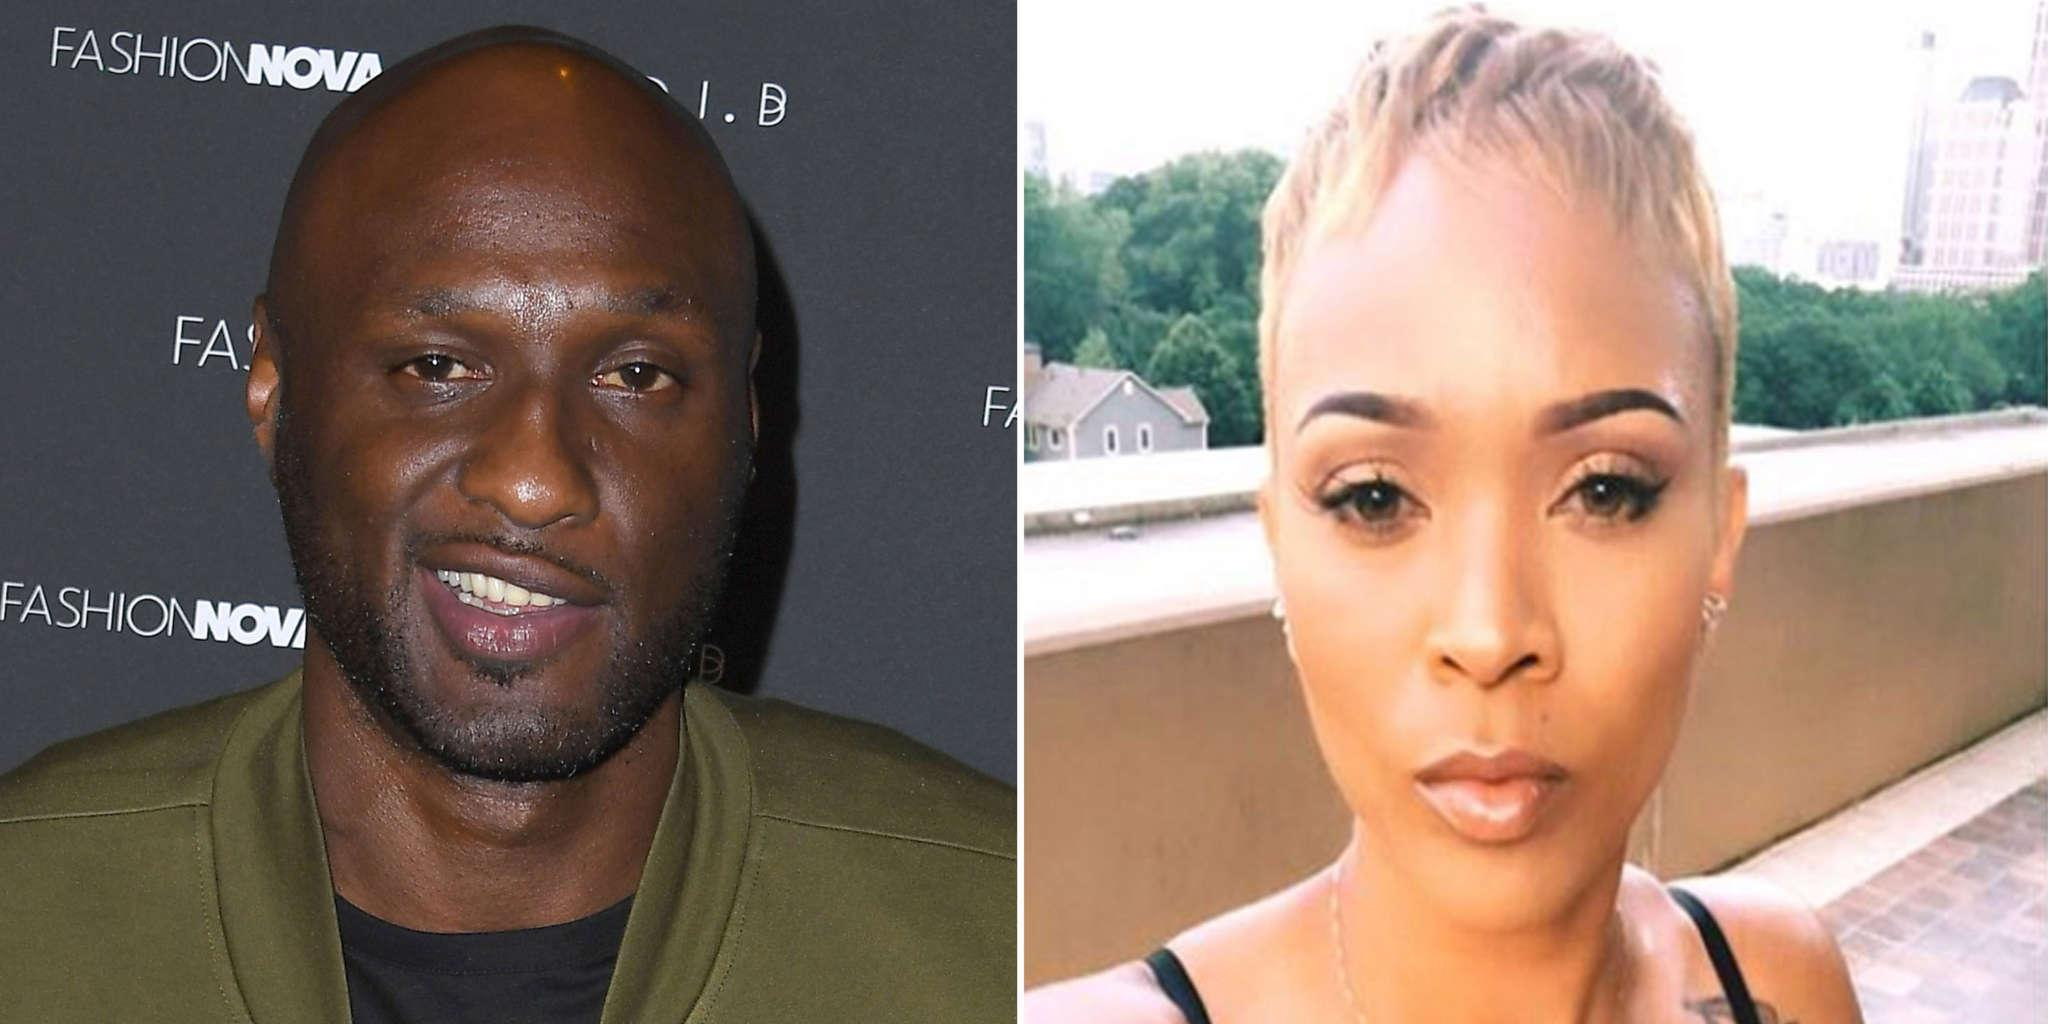 Lamar Odom Announces New Reality Show With Sabrina Parr -- Titled 'Sabrina And Lamar'